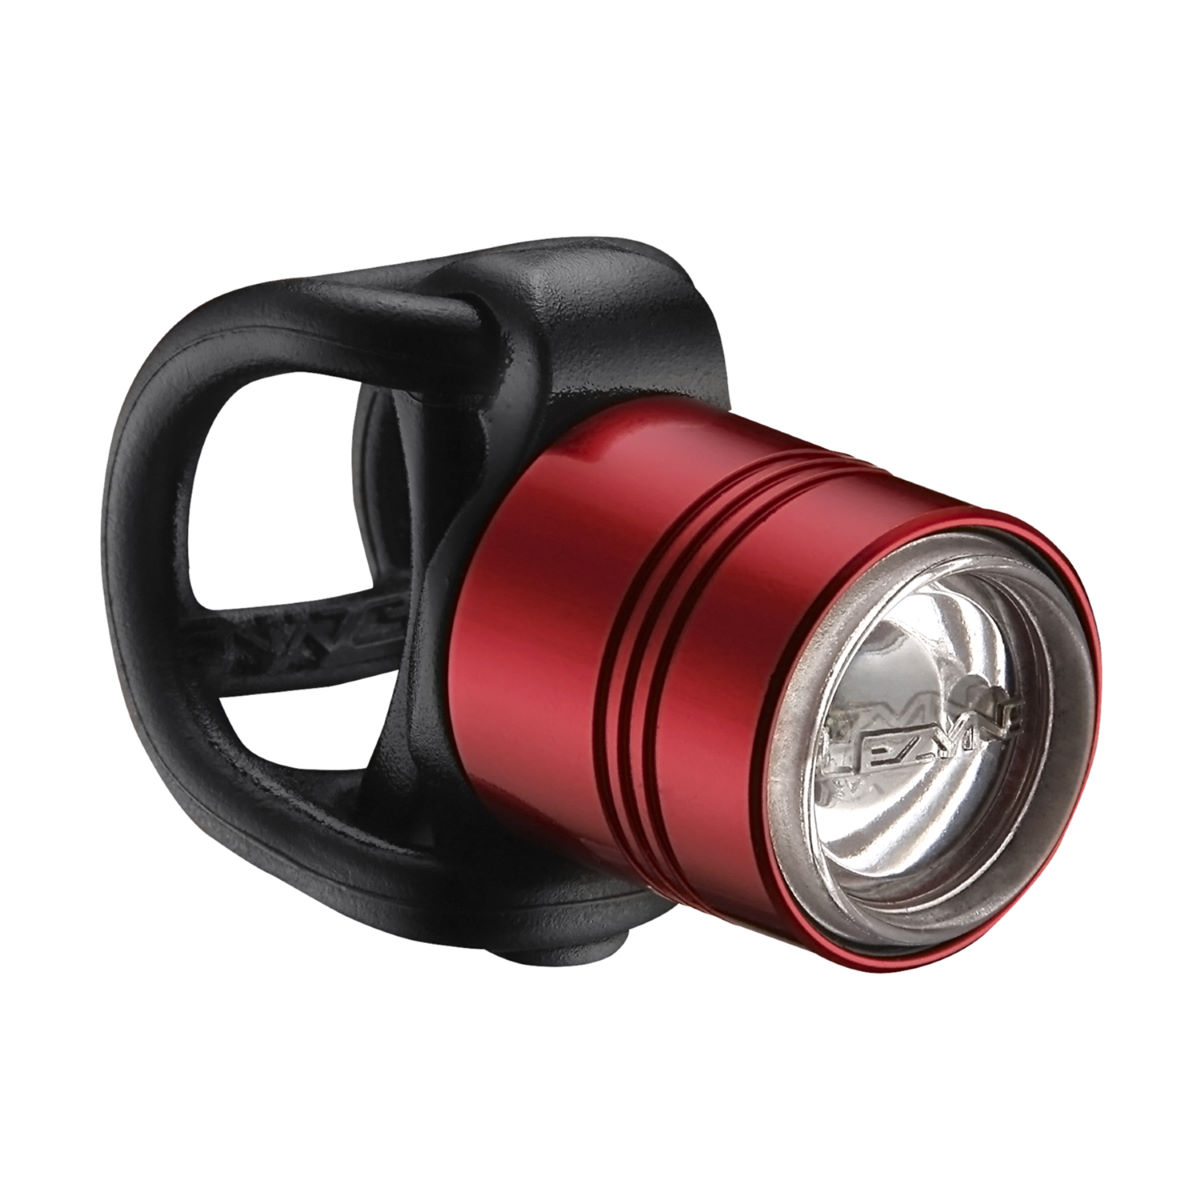 Eclairage avant LED Lezyne Femto Drive - Red/Red Eclairages avant